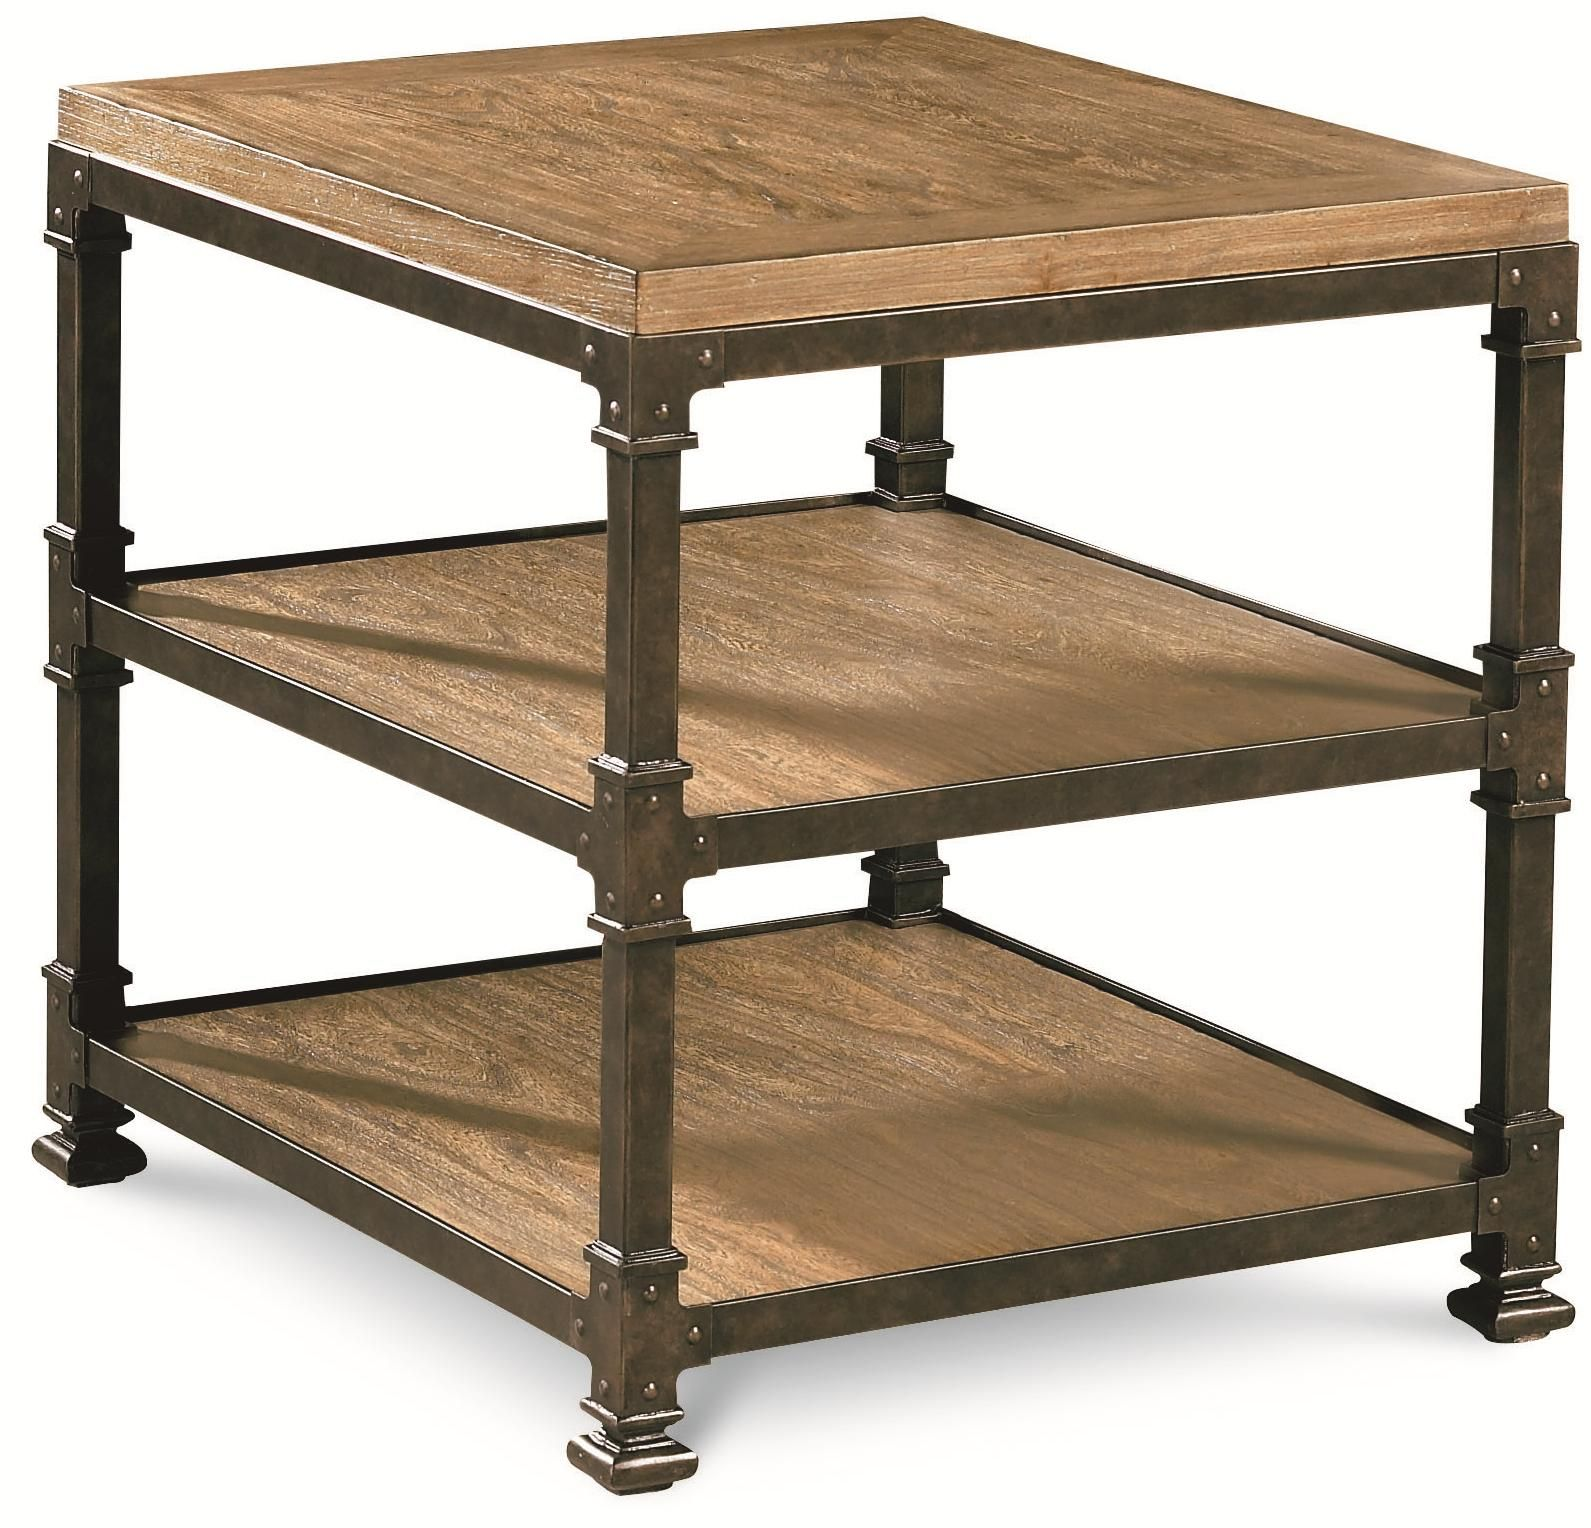 Reinventions Litho End Table W/ 2 Shelves By Thomasville®   Wayside  Furniture   End